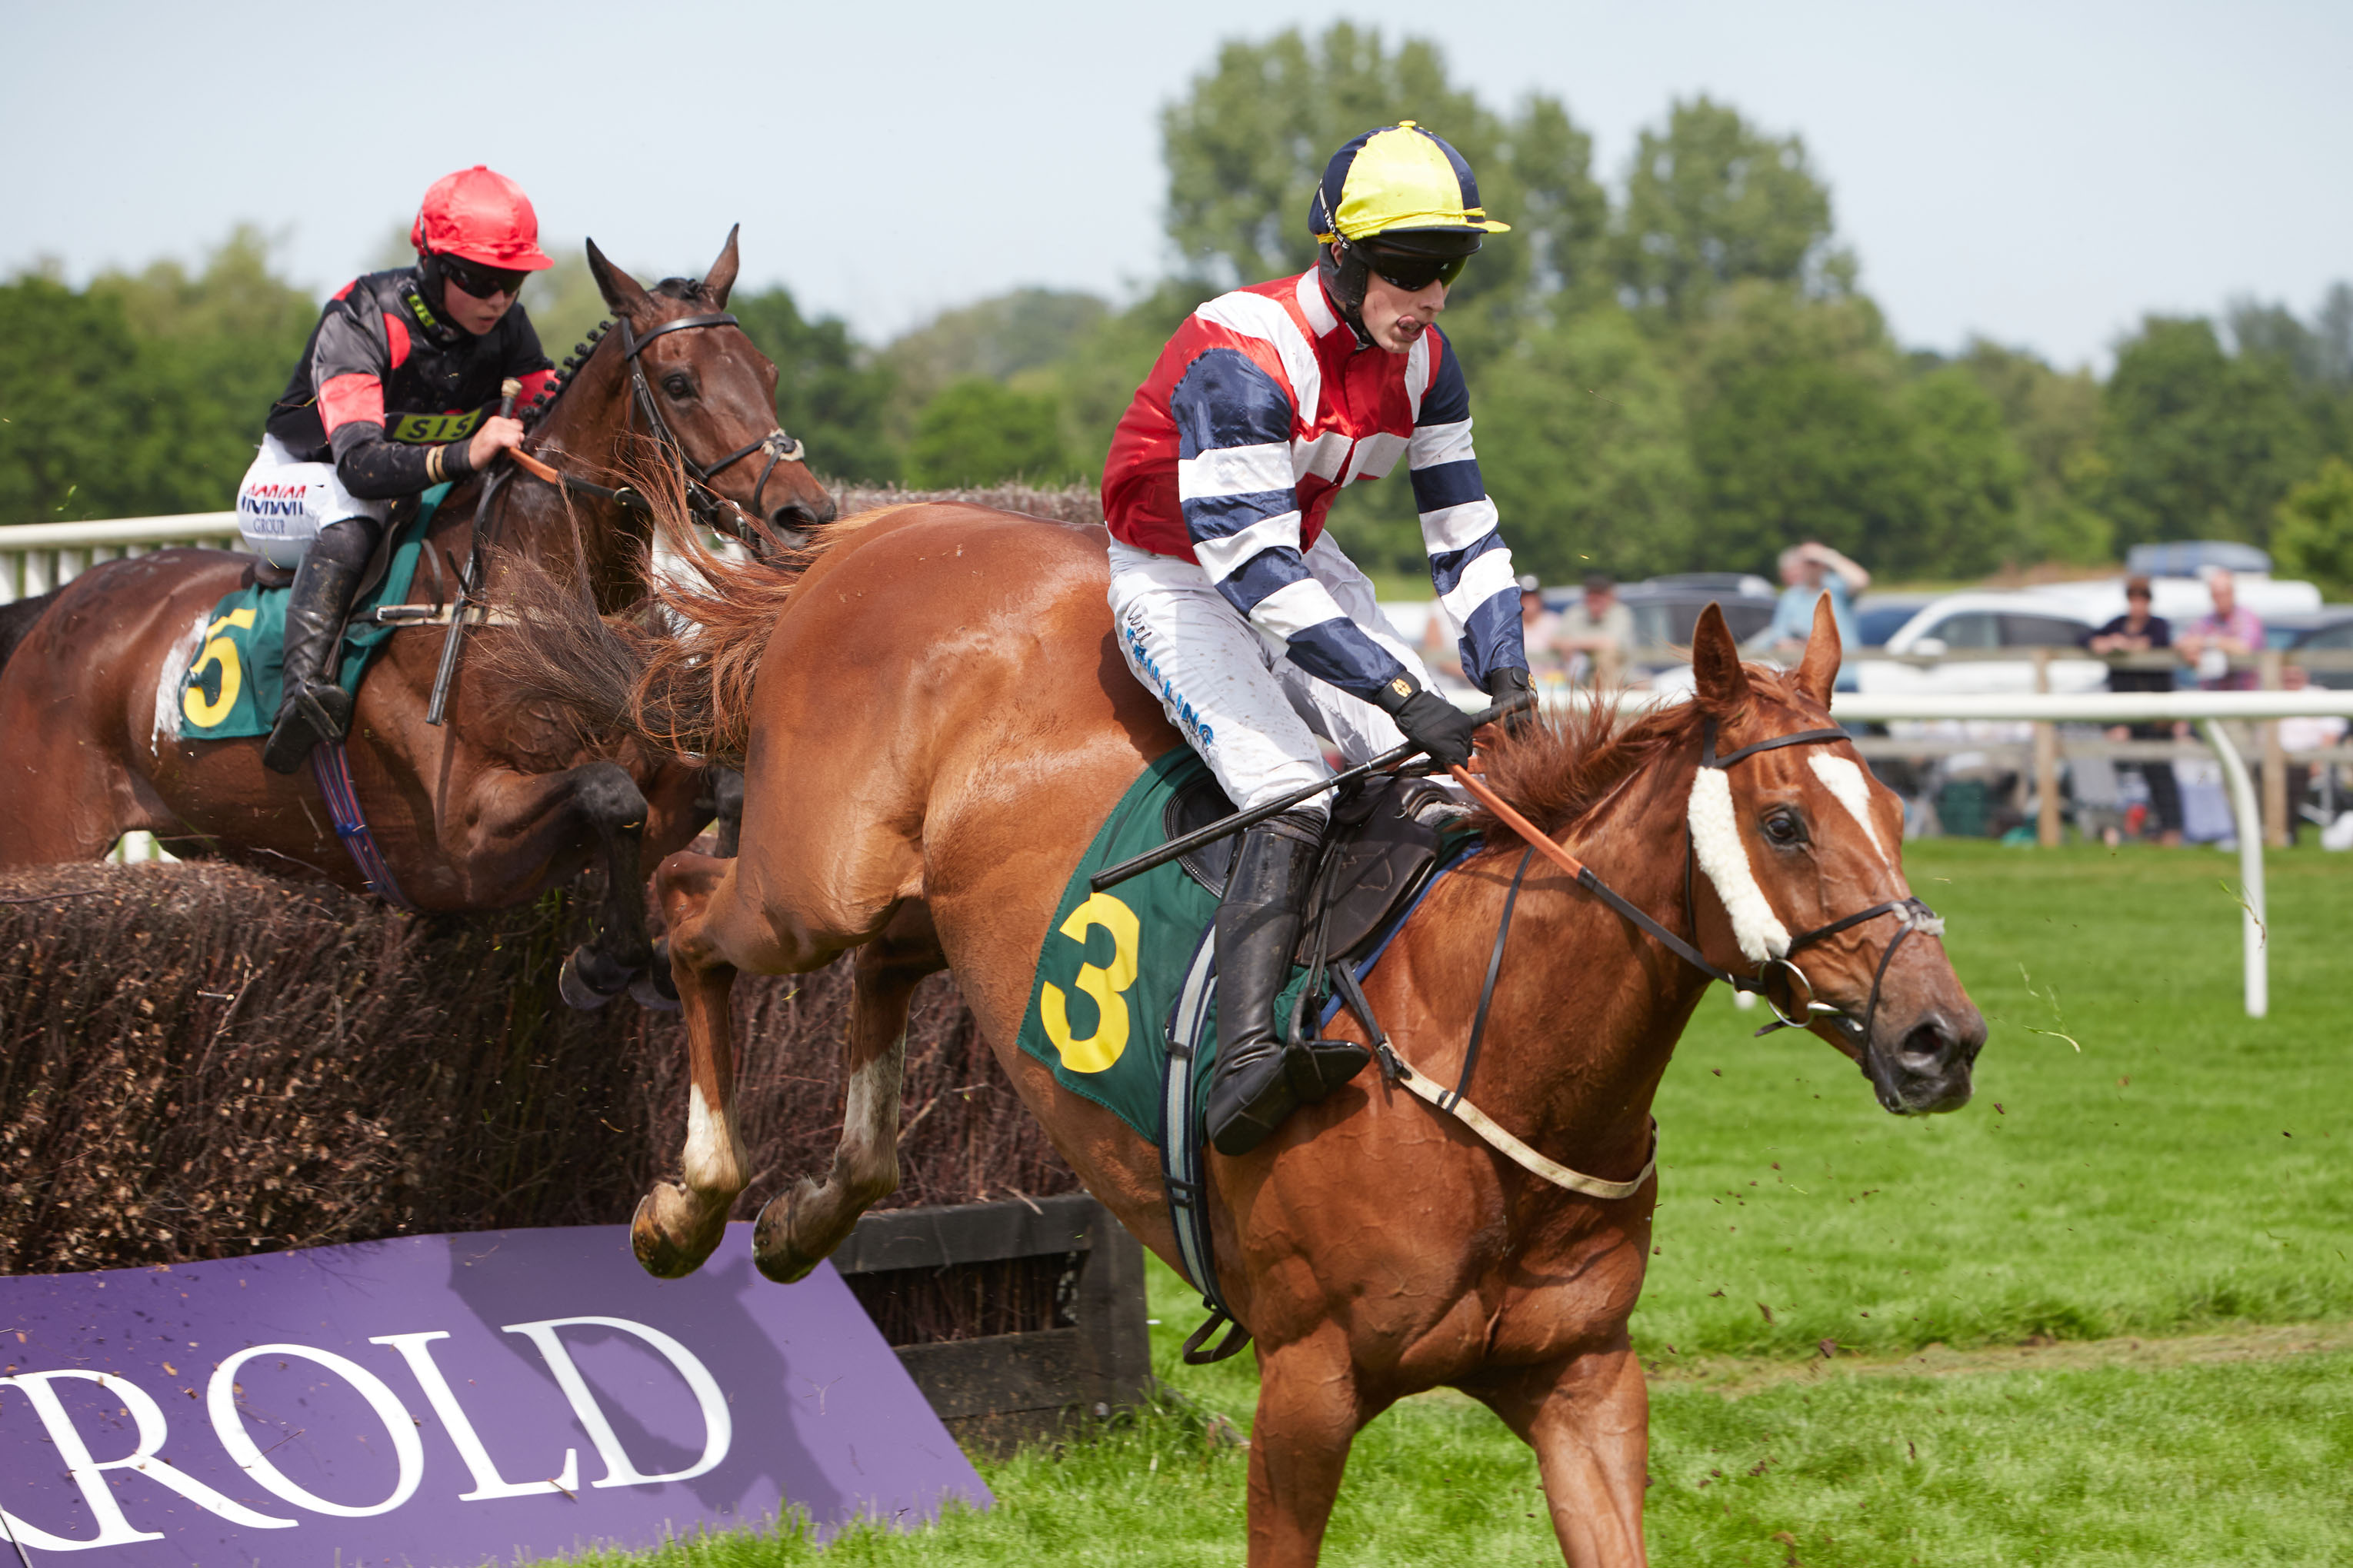 Bryony aims for a double as Fakenham ends the season with a Ladies Day special